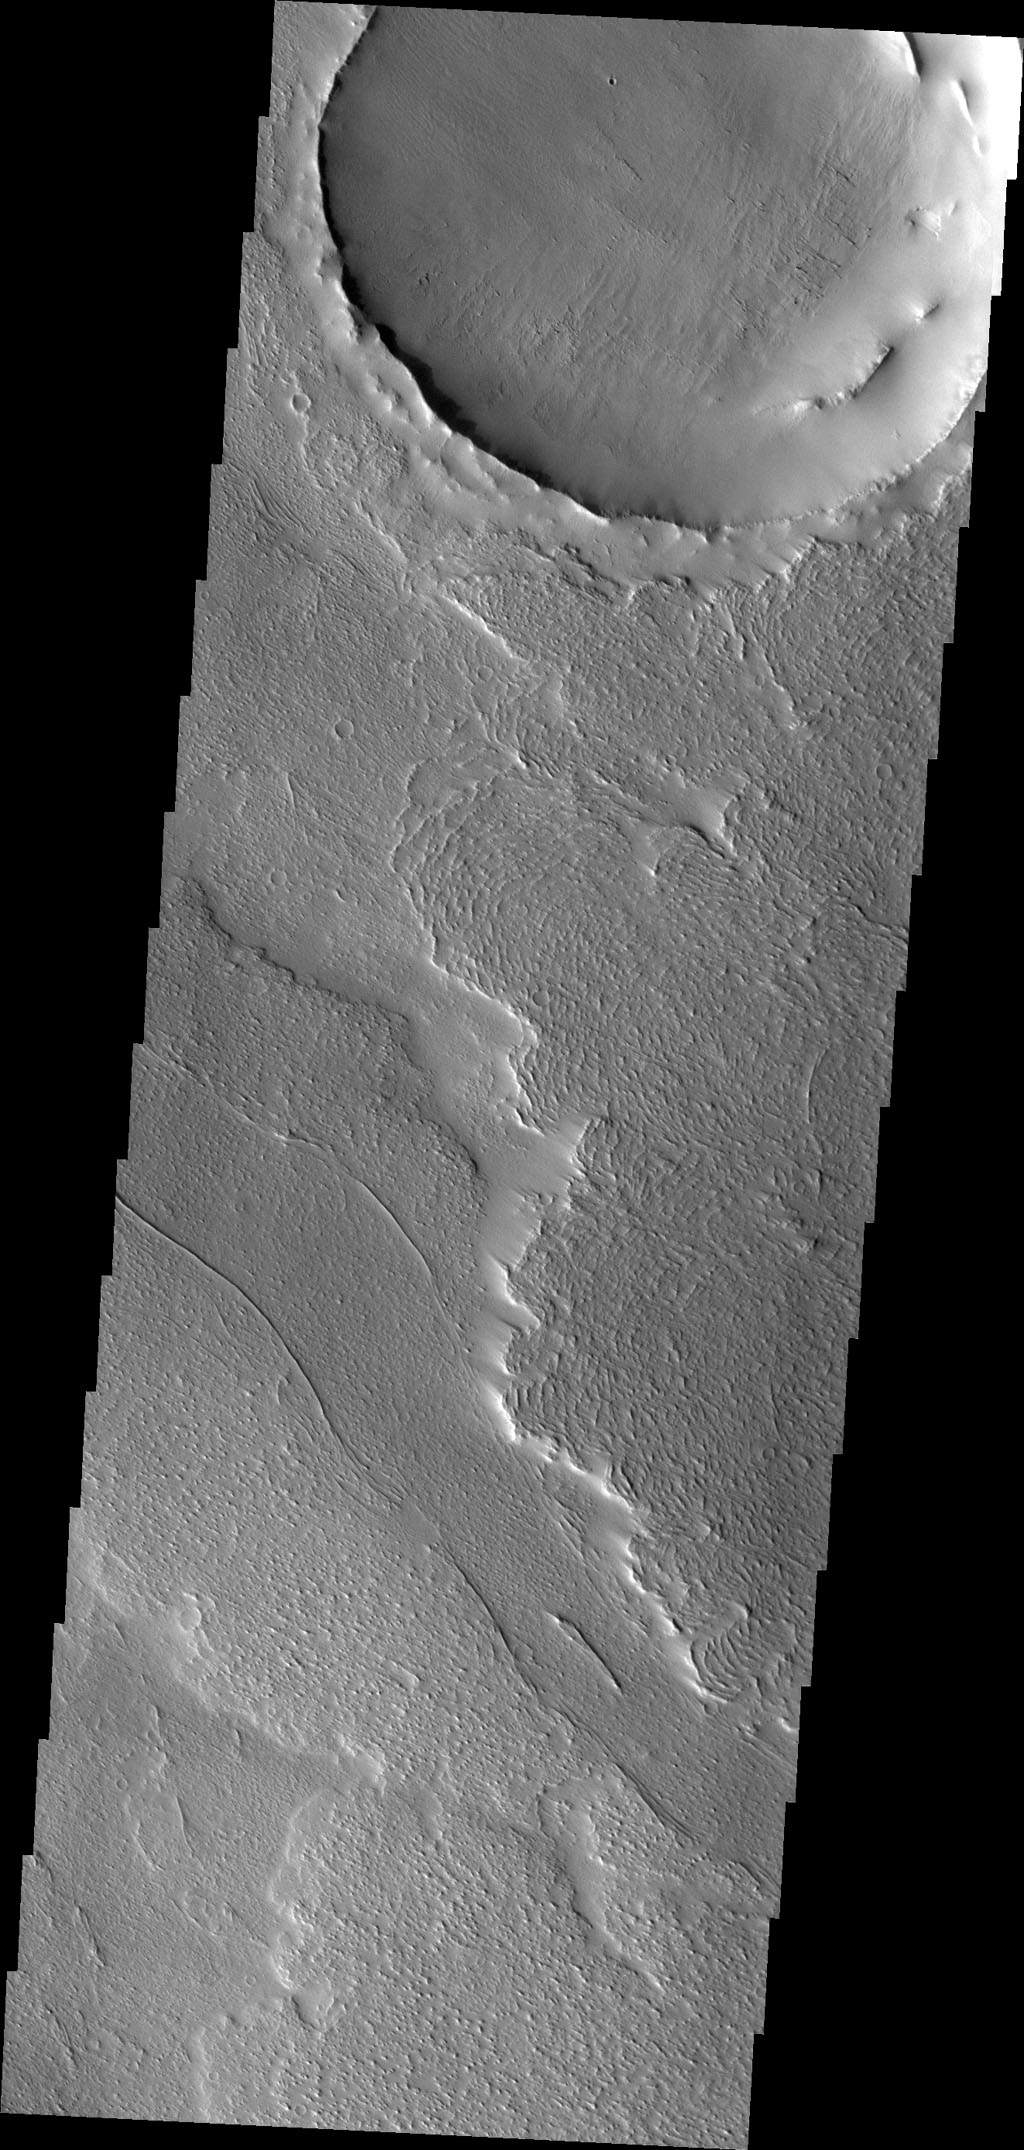 The lava flows in this image captured by NASA's 2001 Mars Odyssey spacecraft are located on the northeastern margin of Daedalia Planum. Wind deposits are visible in the lee of the flow fronts.